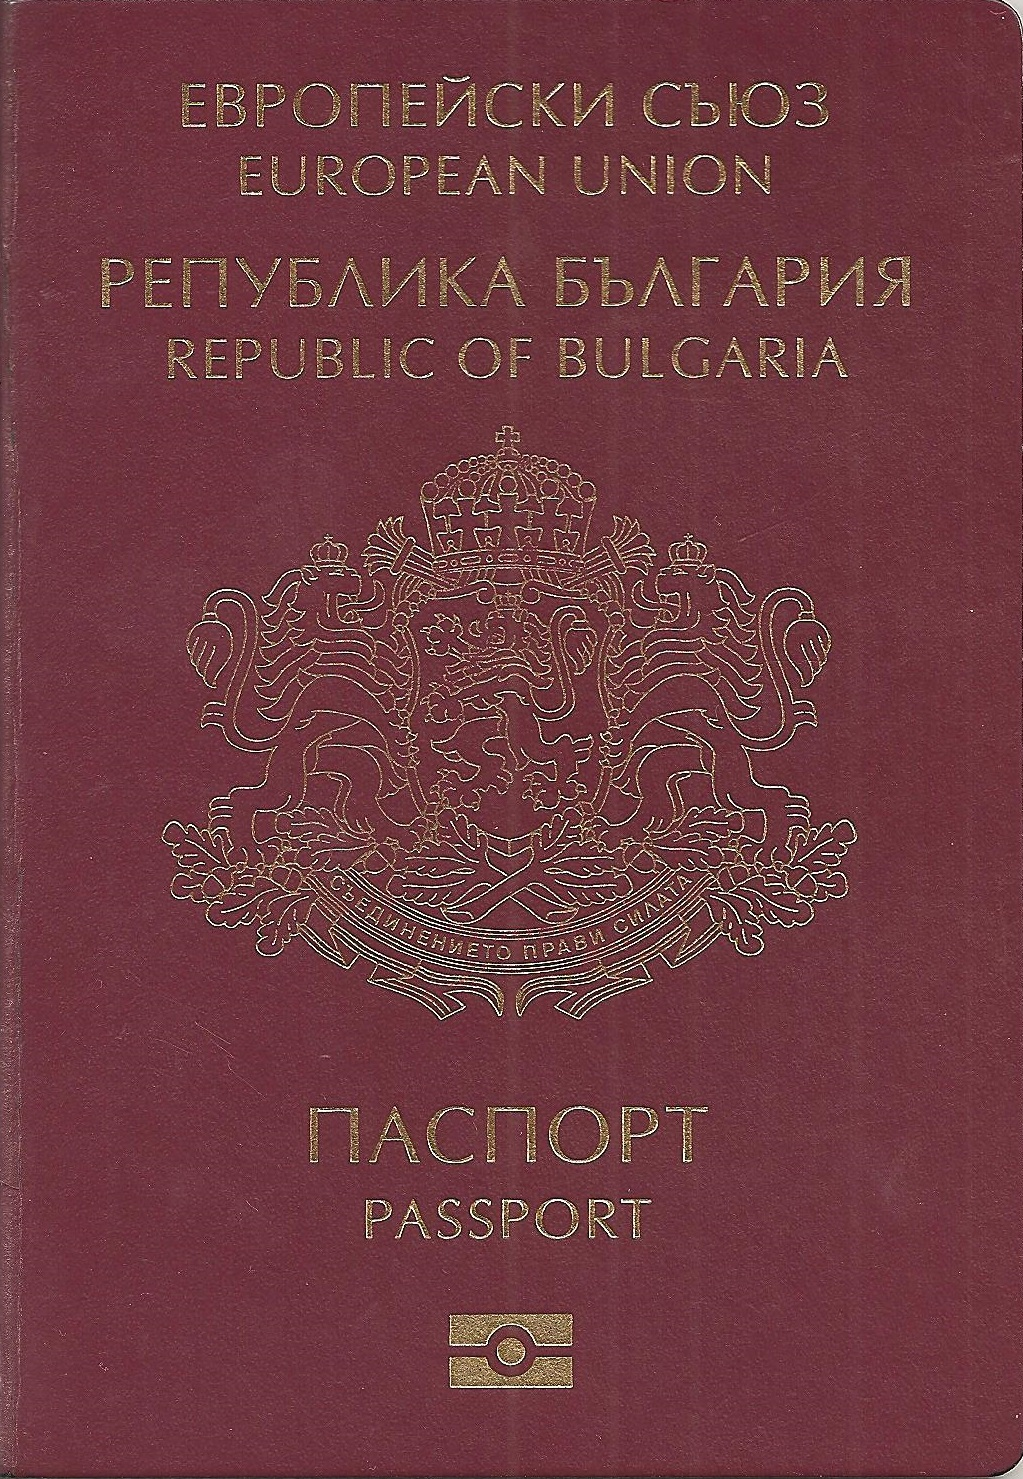 Bulgarian Passport Wikipedia